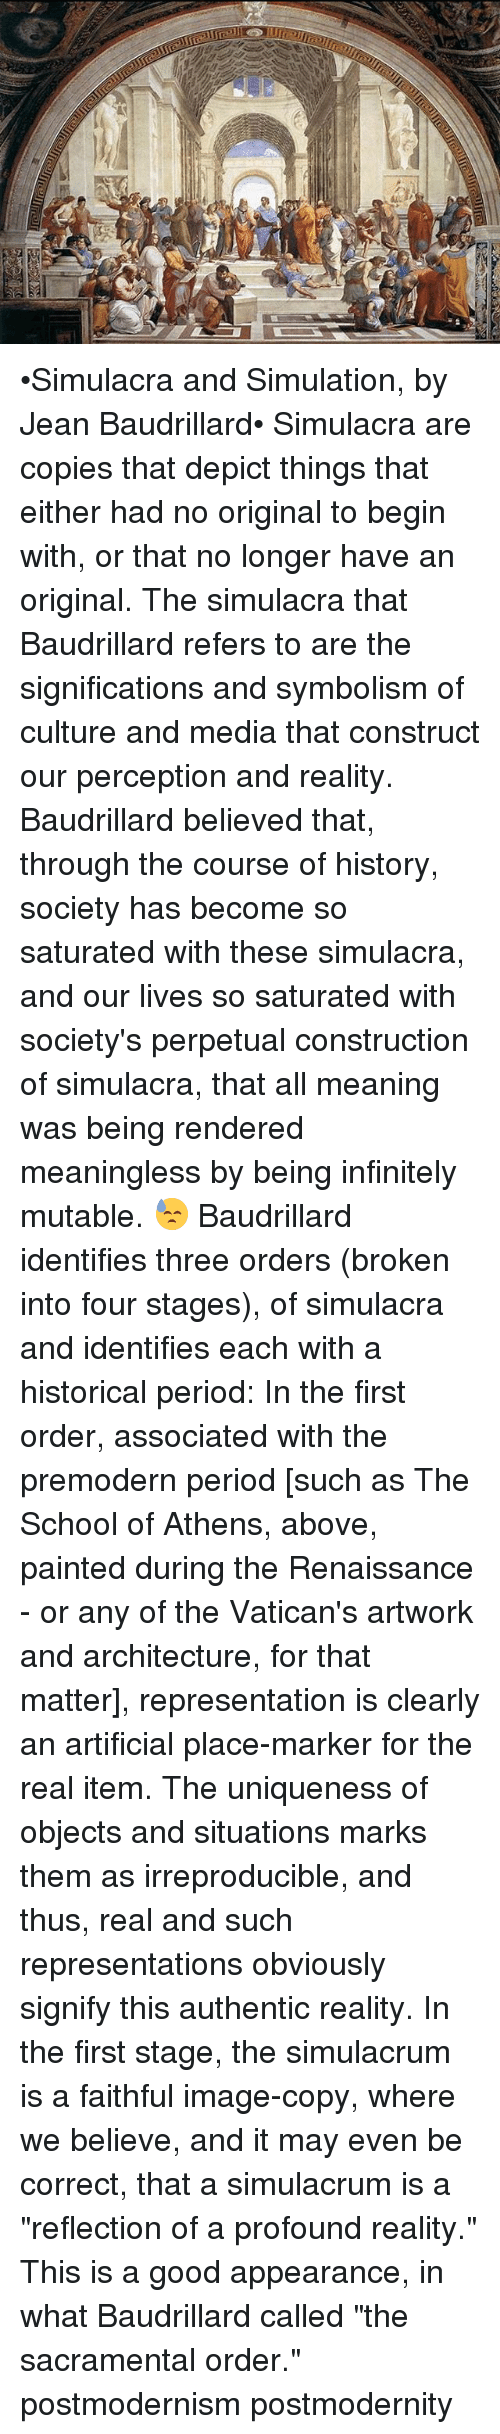 jean baudrillard essay simulacra and simulations Simulacra and simulation essay (mistitled simulacra and simulations) the simulacra to which baudrillard refers are the signs of culture and.